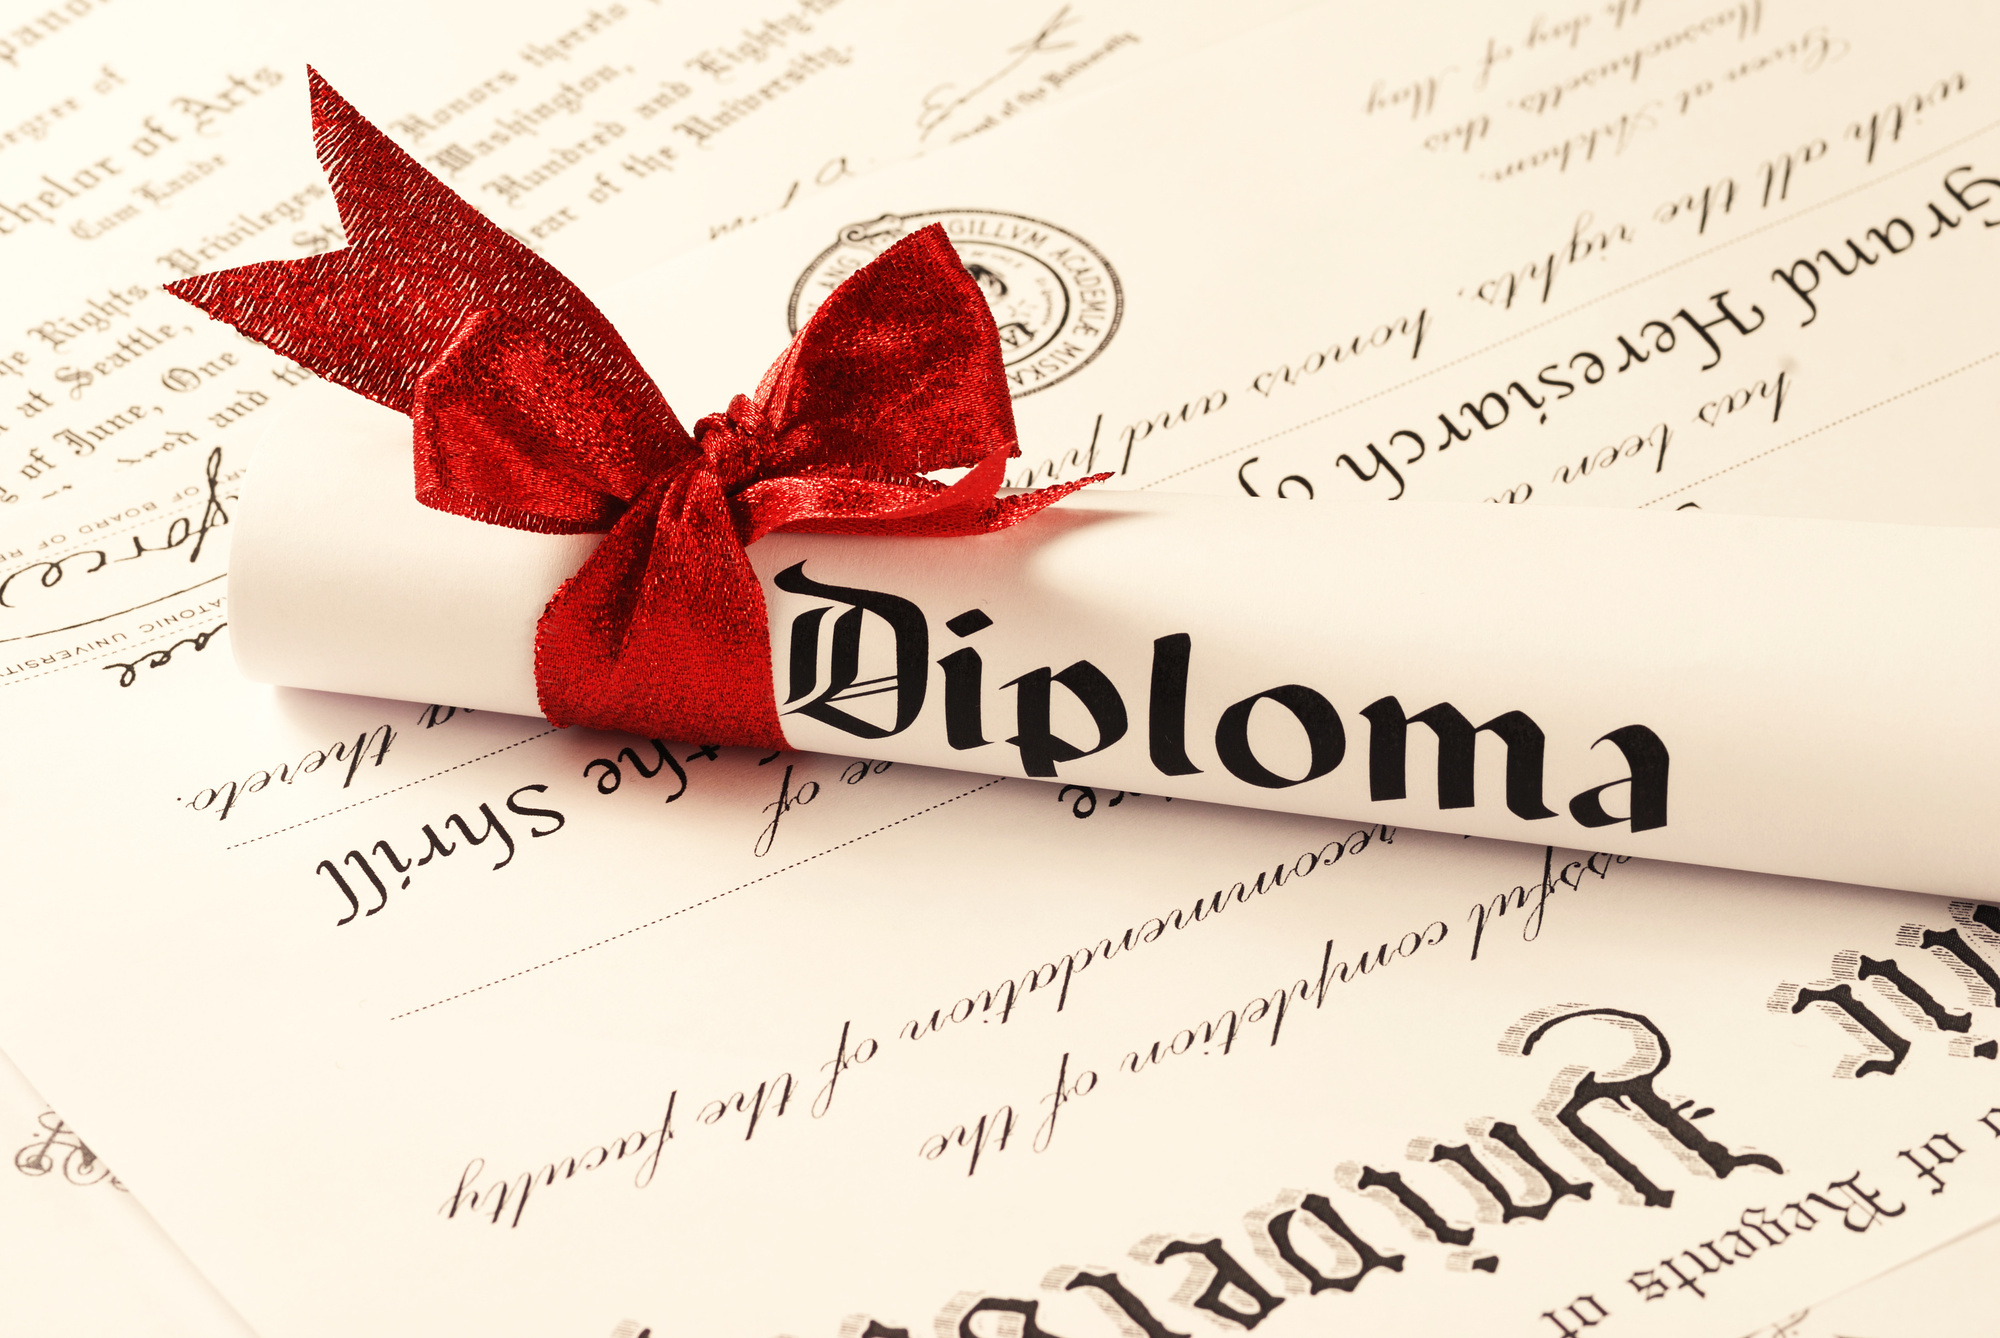 How to Be Smart When Buying Fake Diplomas